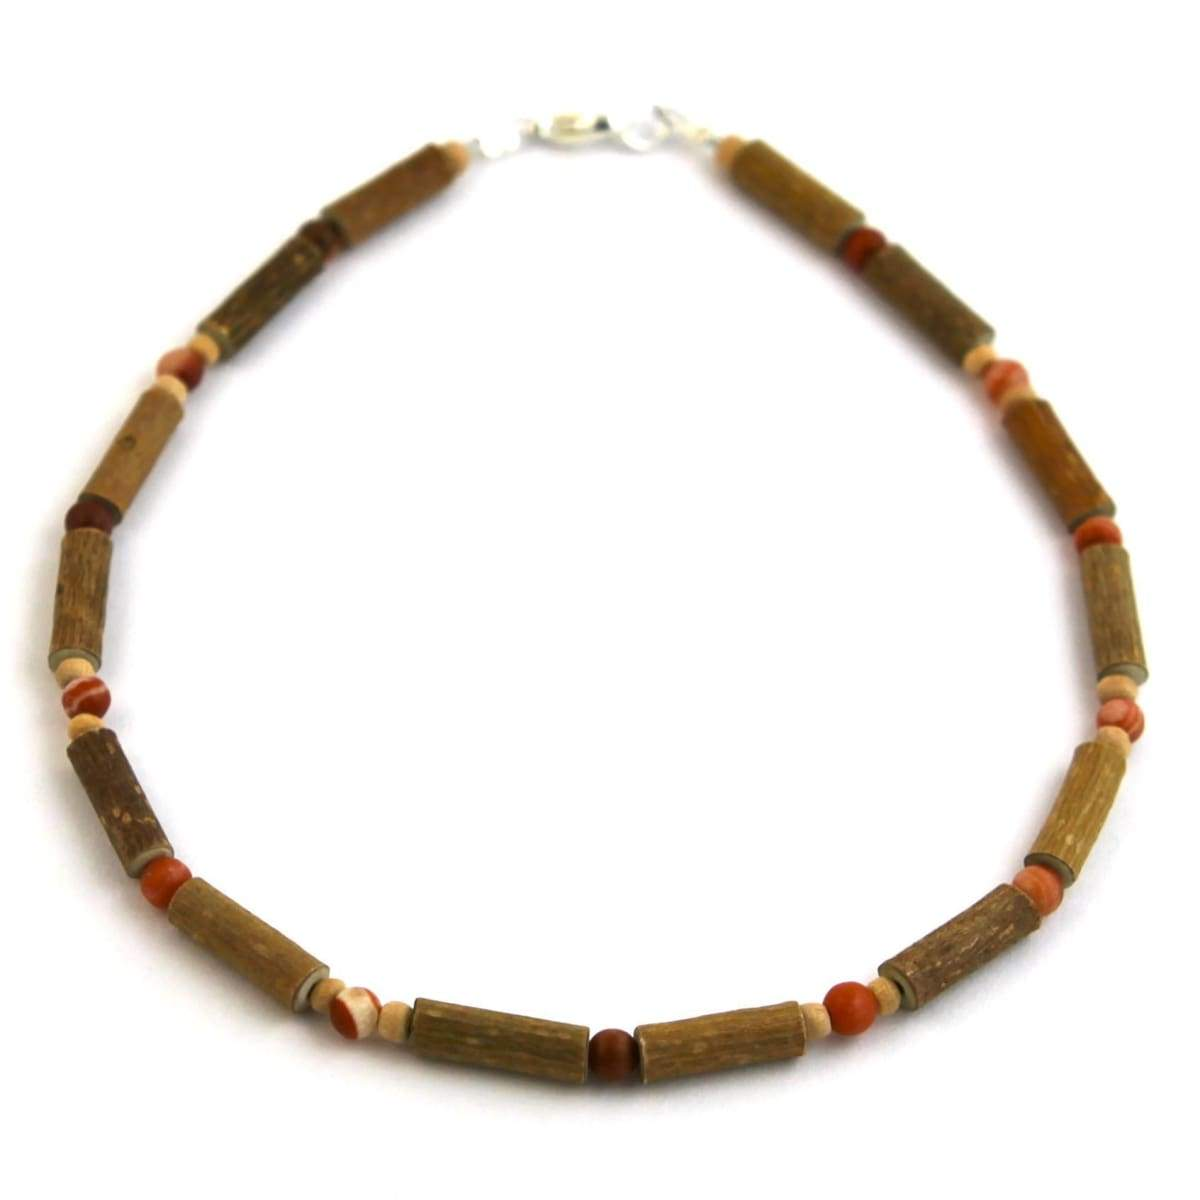 Hazel-Gemstone Red Malachite - 11 Necklace - Lobster Claw Clasp - Hazelwood & Gemstone Jewelry